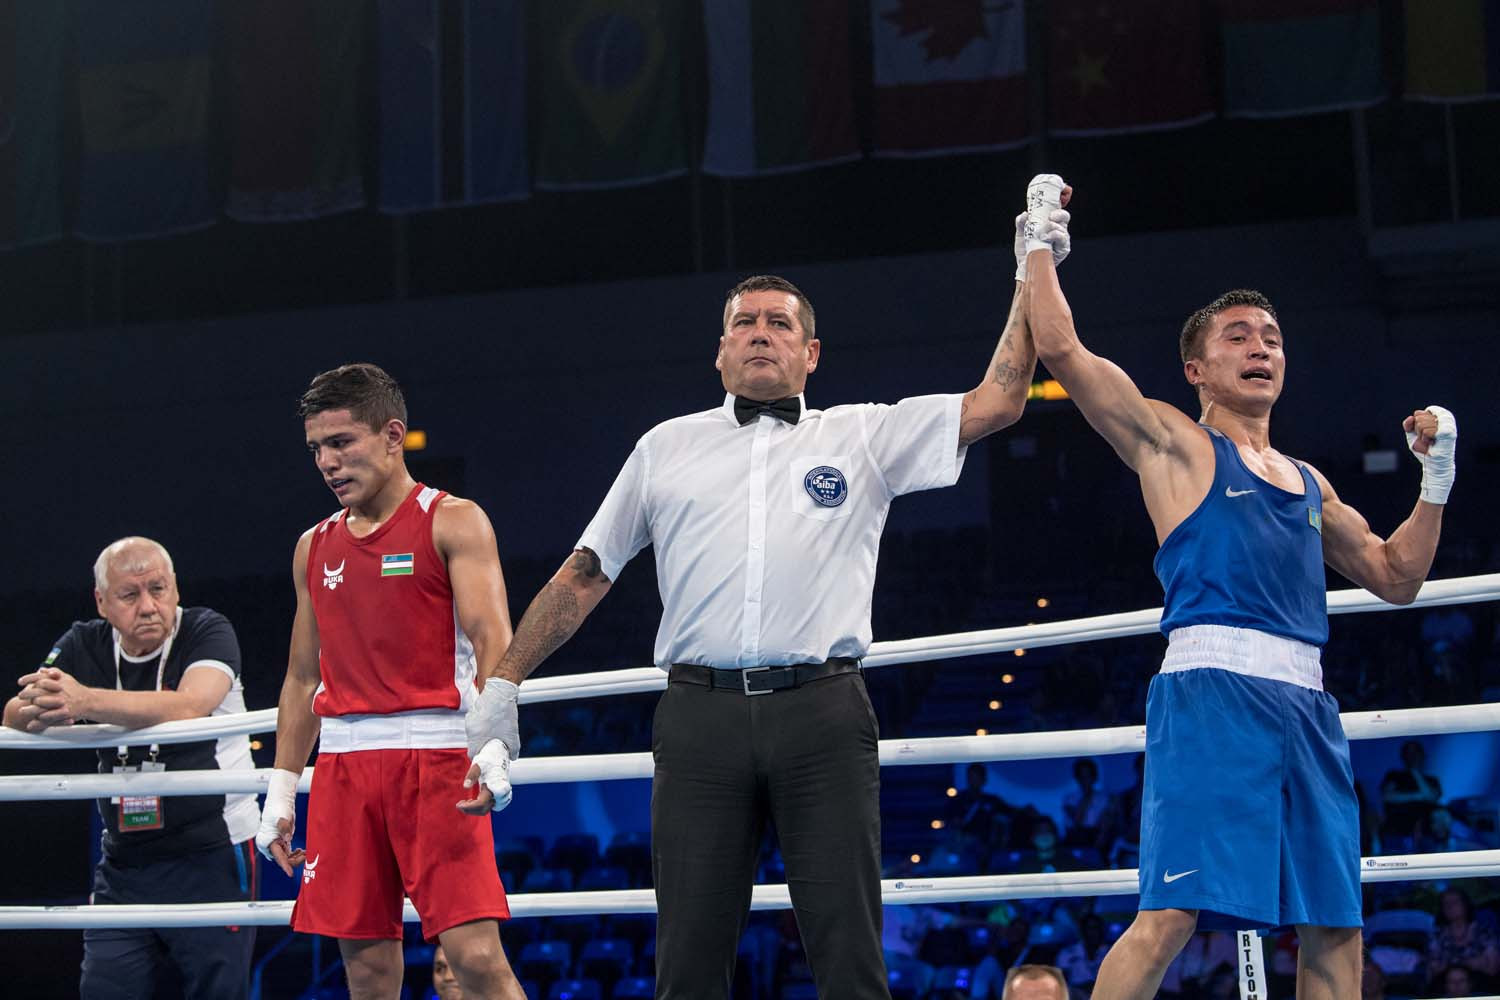 Top seed Akhmadaliev crashes out of AIBA World Championships